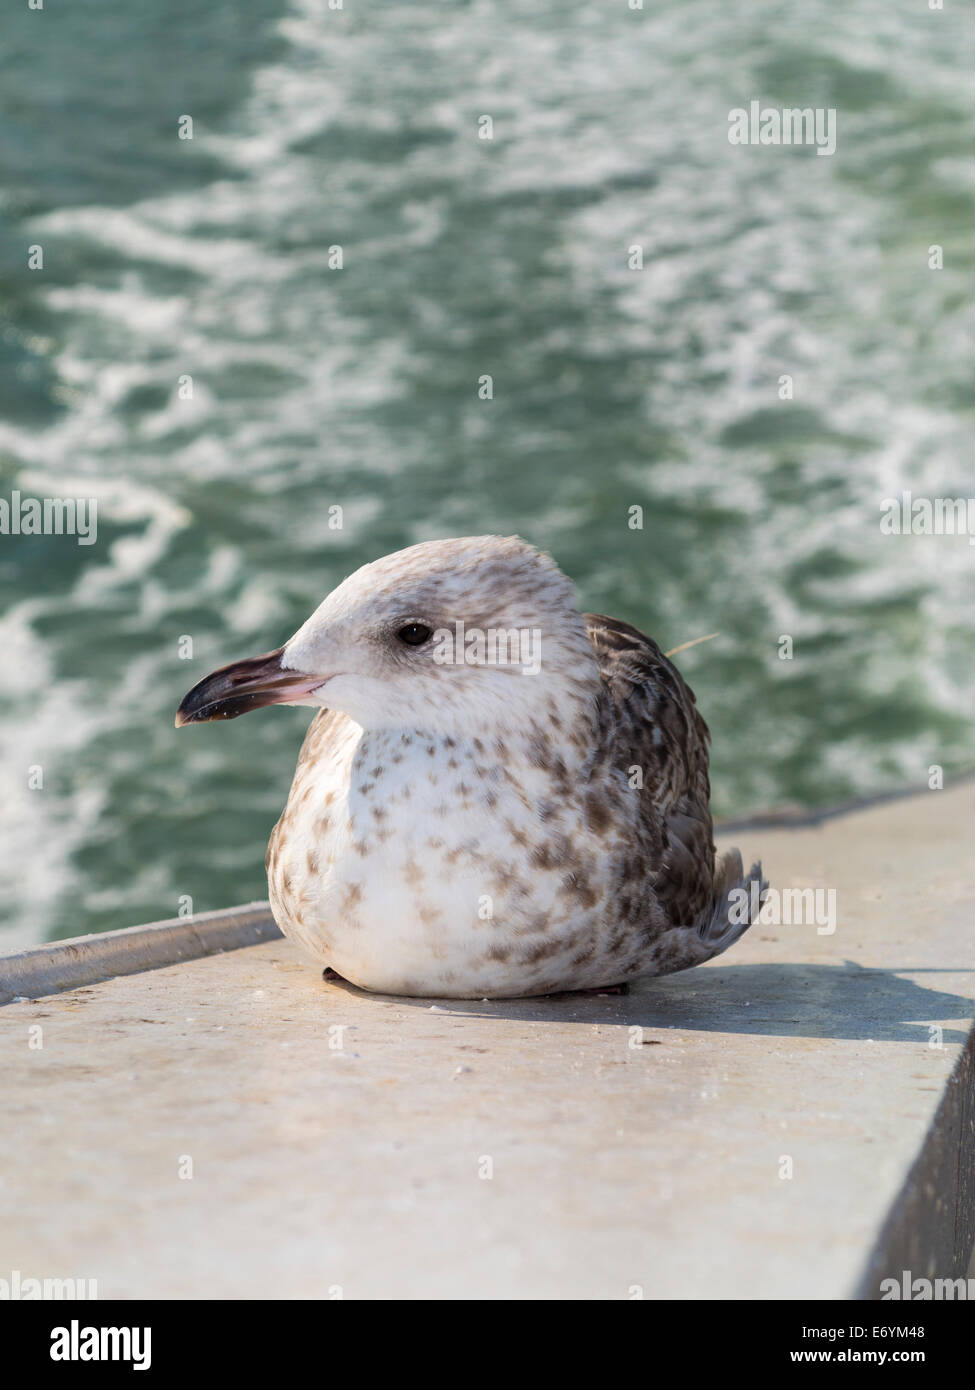 Juvenile Herring Gull in first winter plumage. - Stock Image